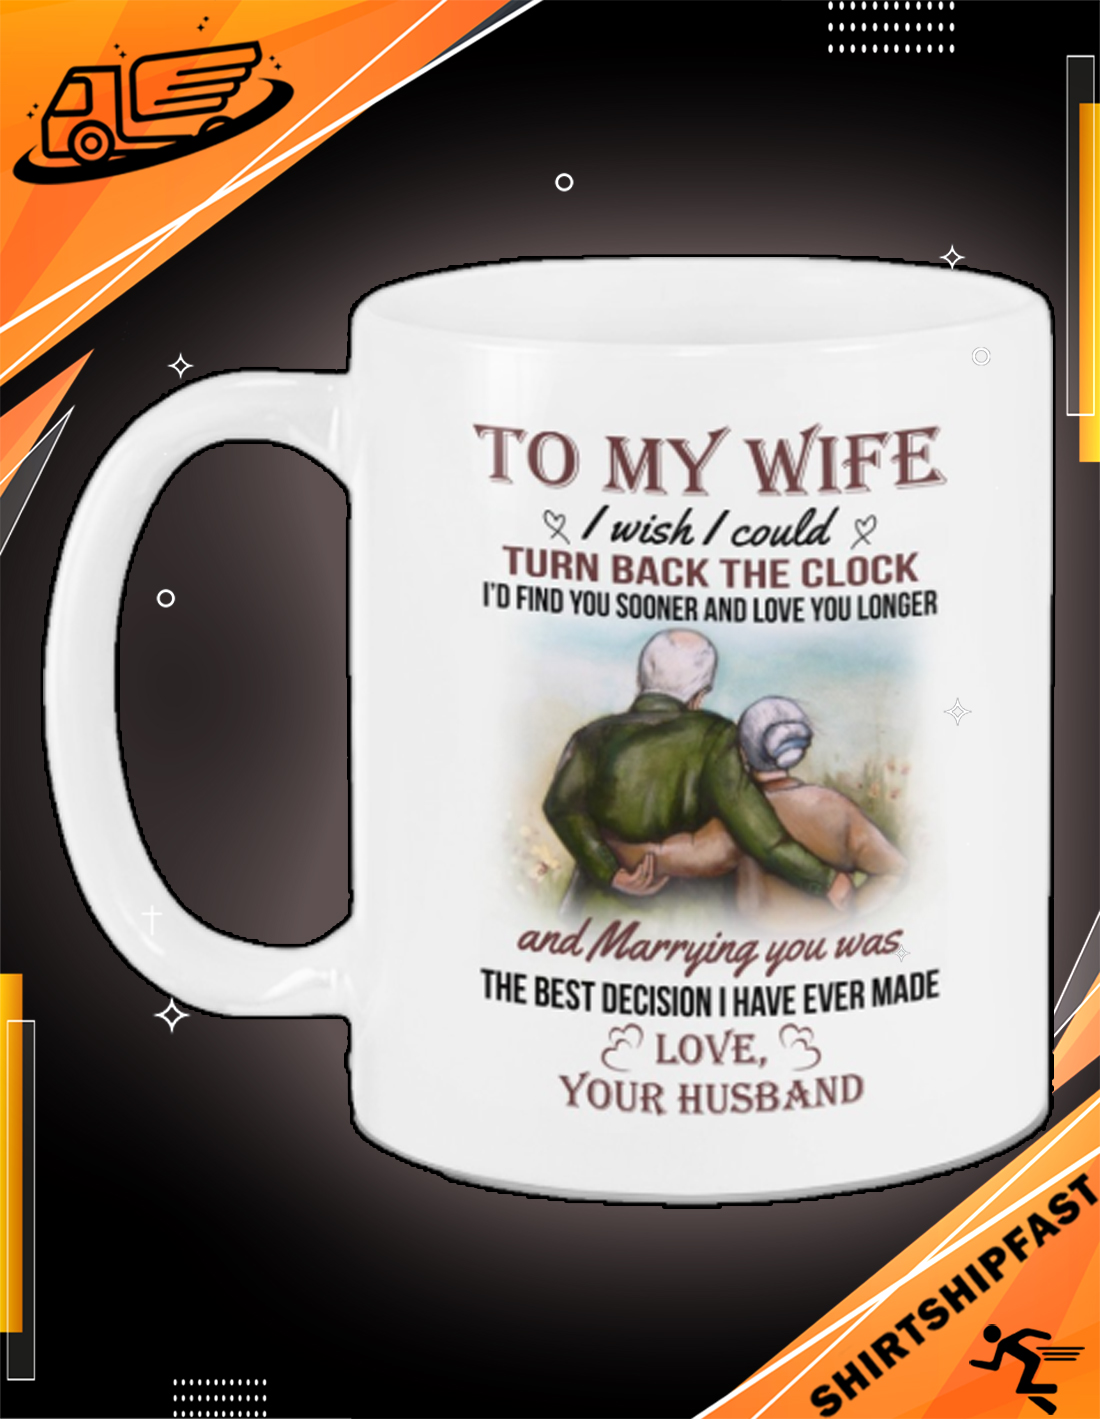 To my wife I wish I could turn back the clock mug - Picture 3